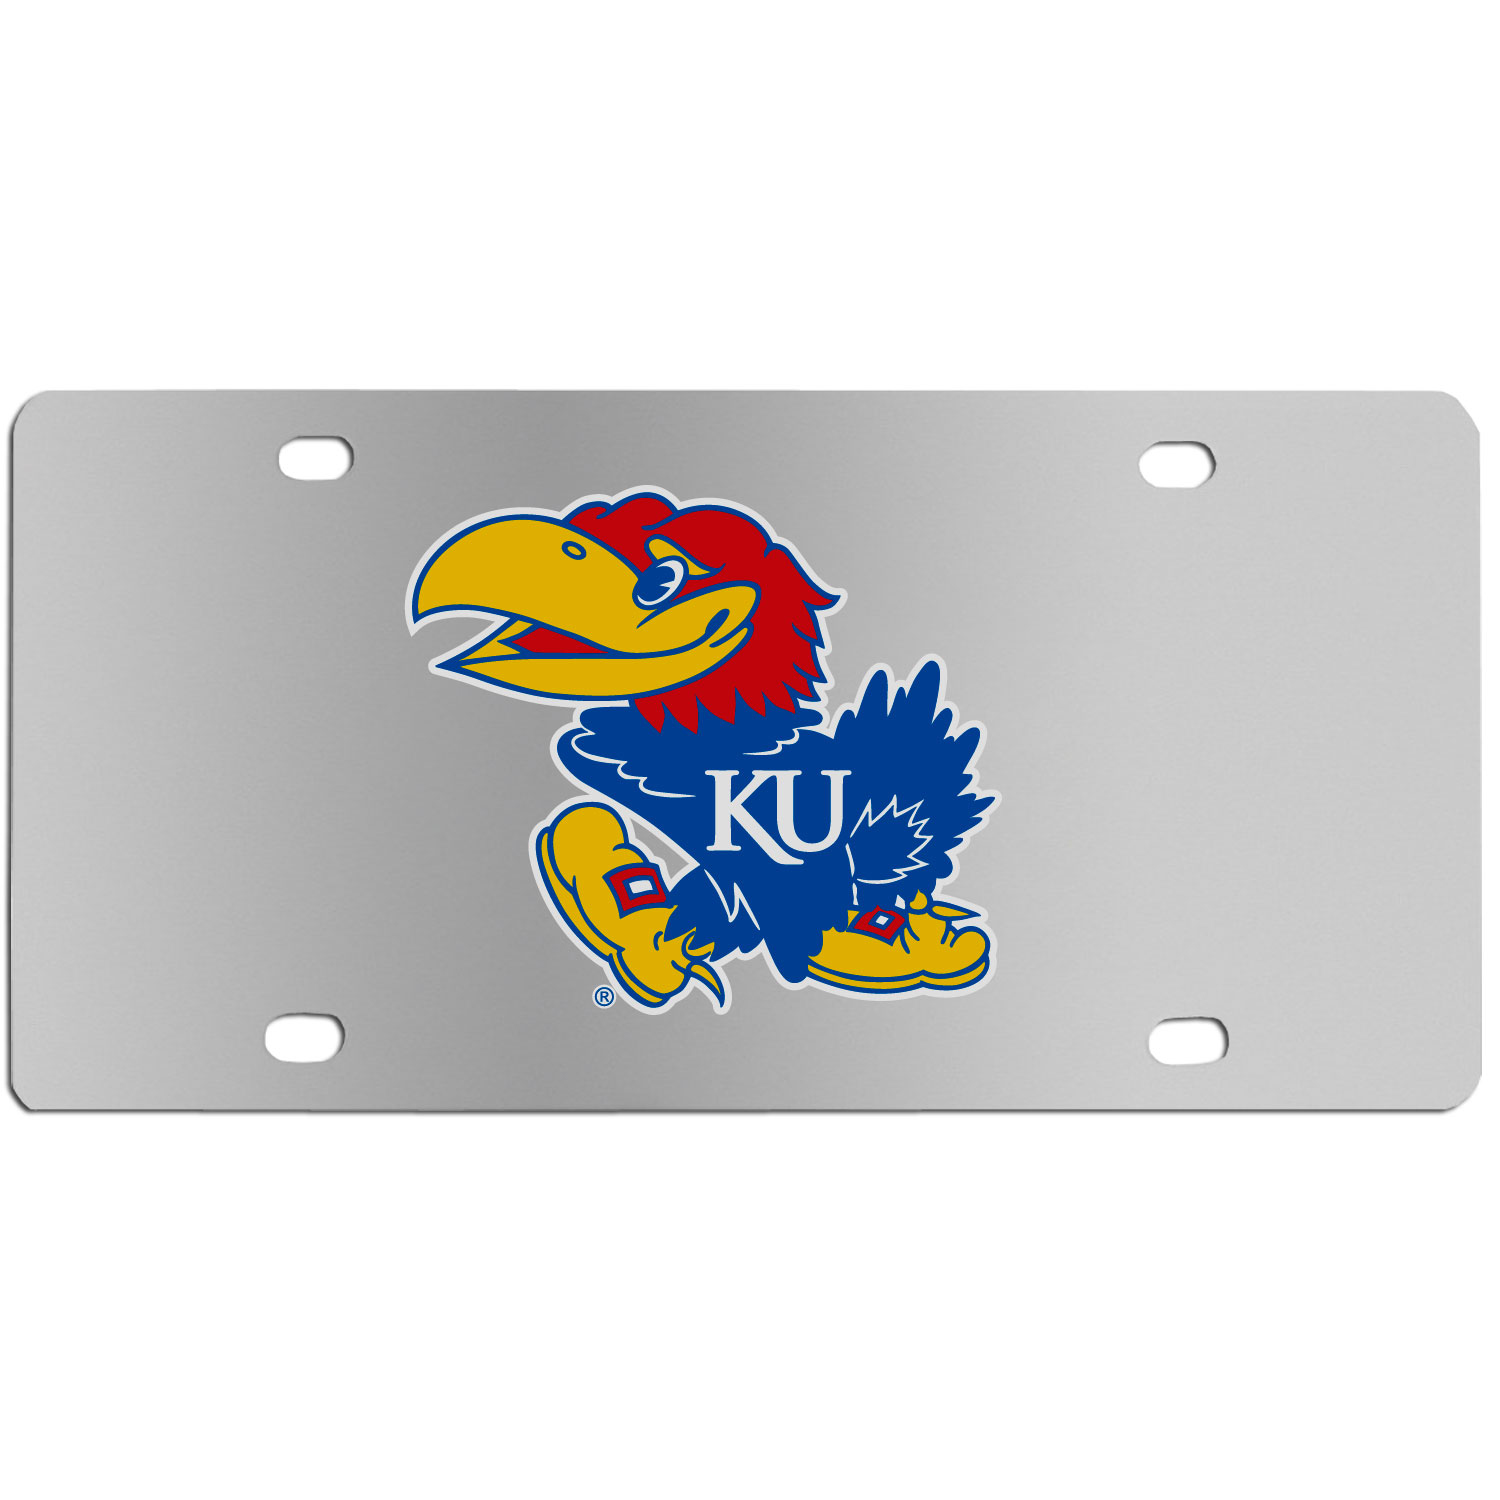 Kansas Jayhawks Steel License Plate Wall Plaque - This high-quality stainless steel license plate features a detailed team logo on a the polished surface. The attractive plate is perfect for wall mounting in your home or office to become the perfect die-hard Kansas Jayhawks fan decor.